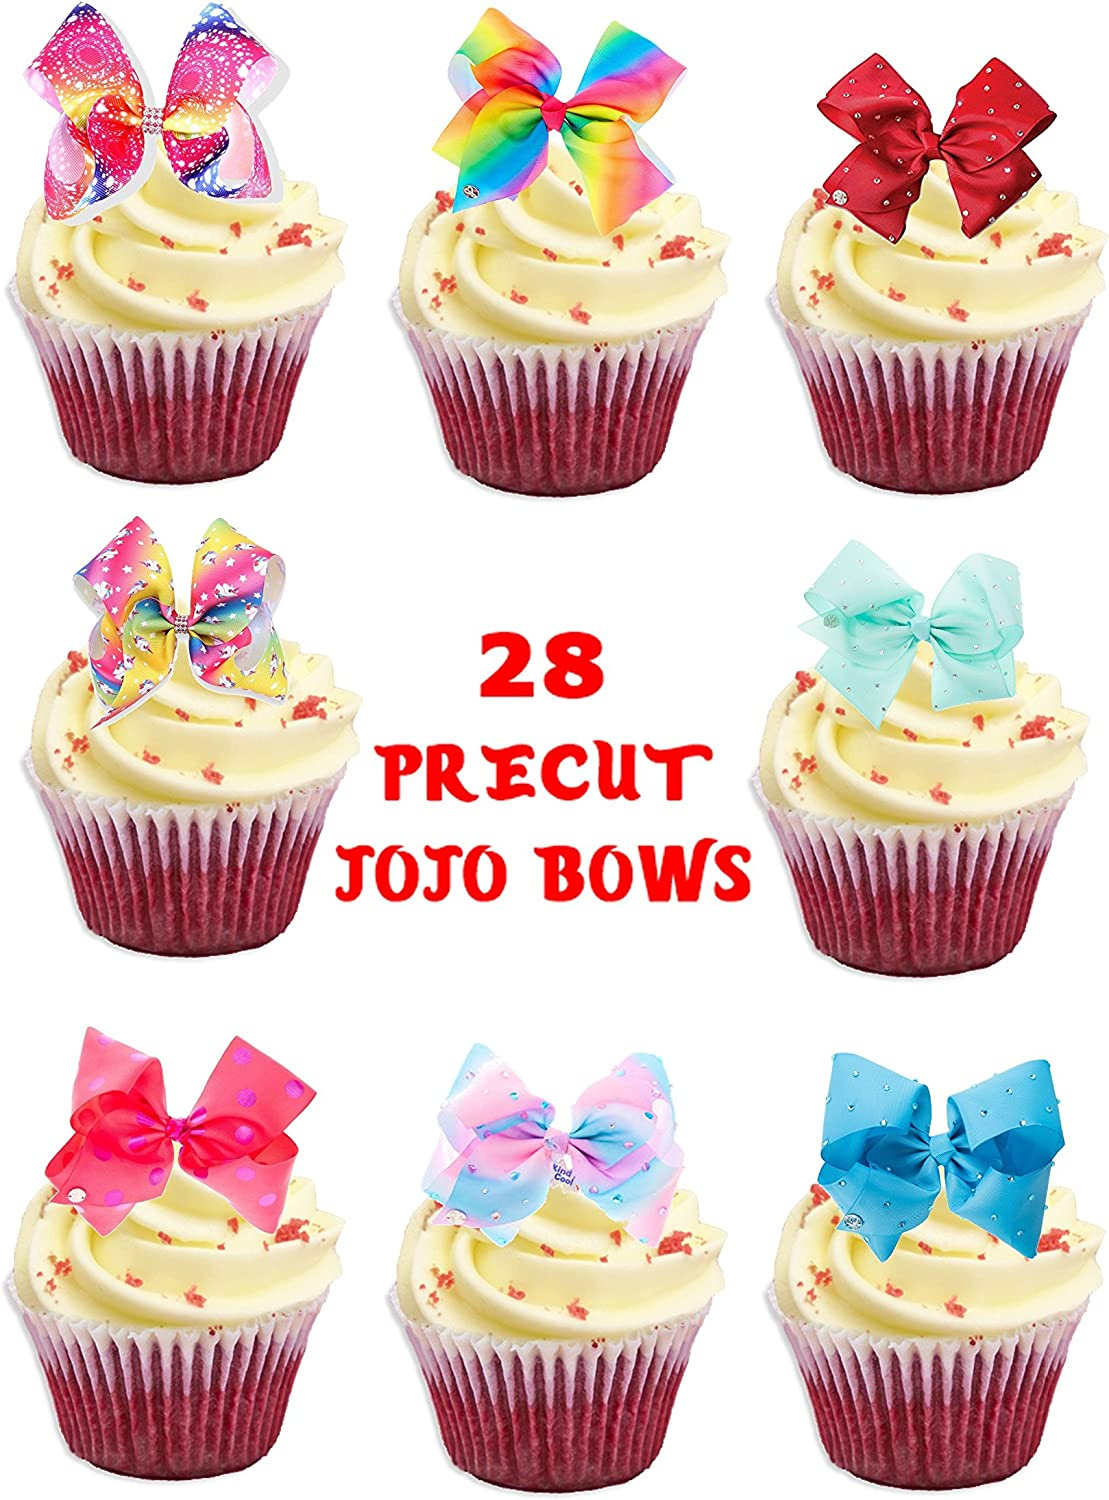 30X 4cm ABADAS EDIBLE FONDANT//WAFER FAIRY CUP CAKE TOPPERS